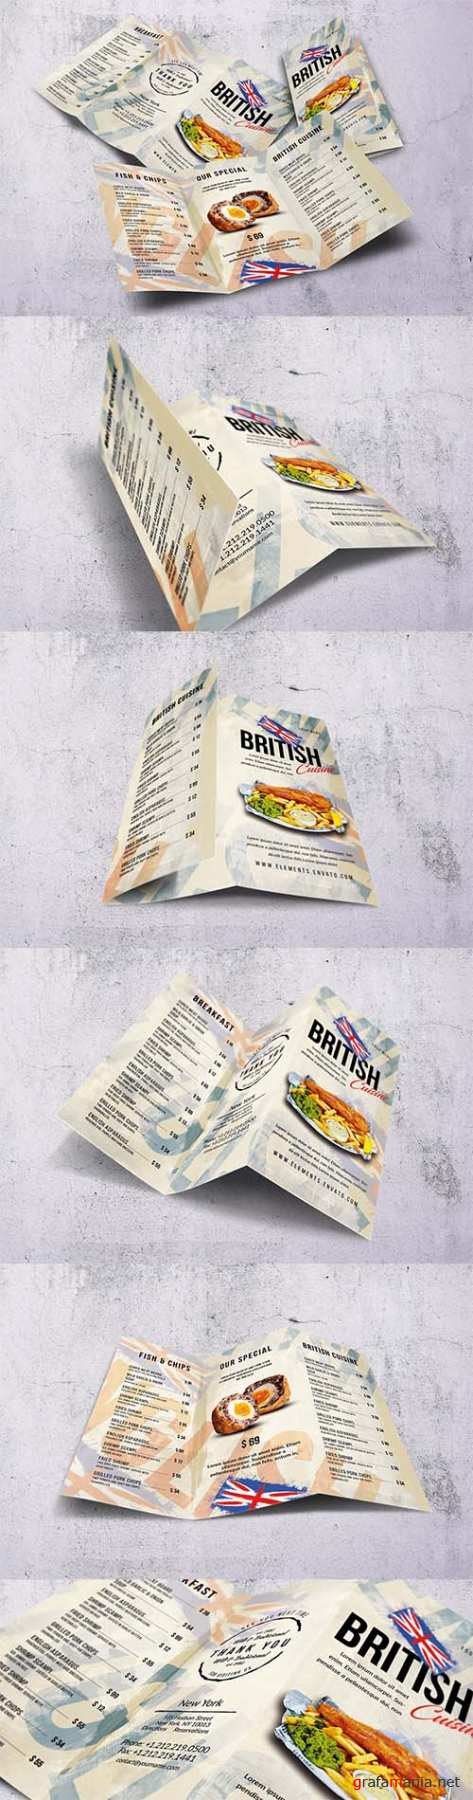 British Cuisine Trifold Food Menu PSD